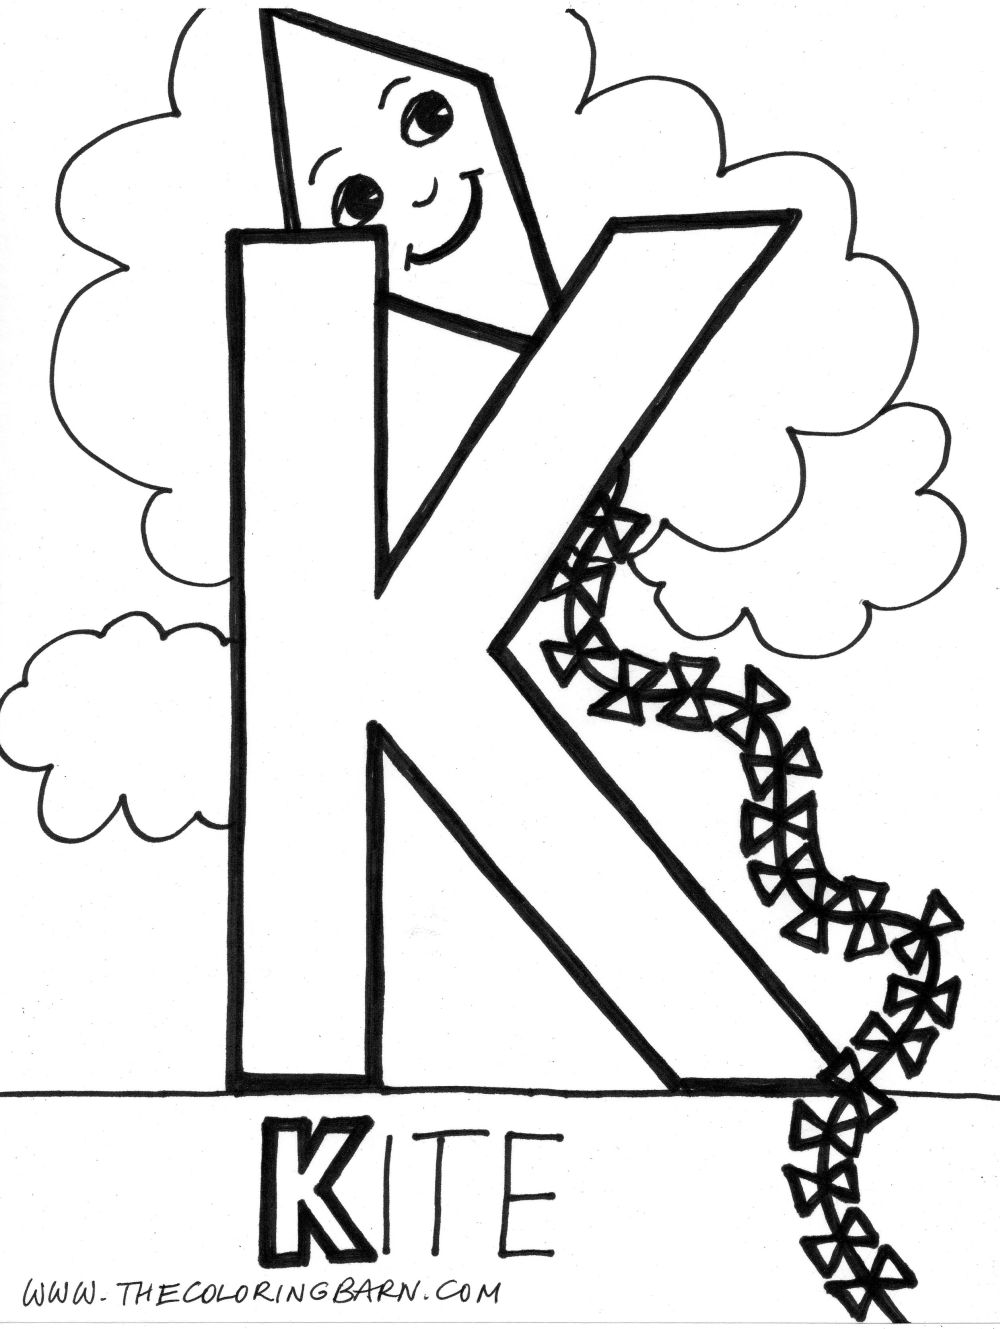 Letter_K_Coloring_Pages_01